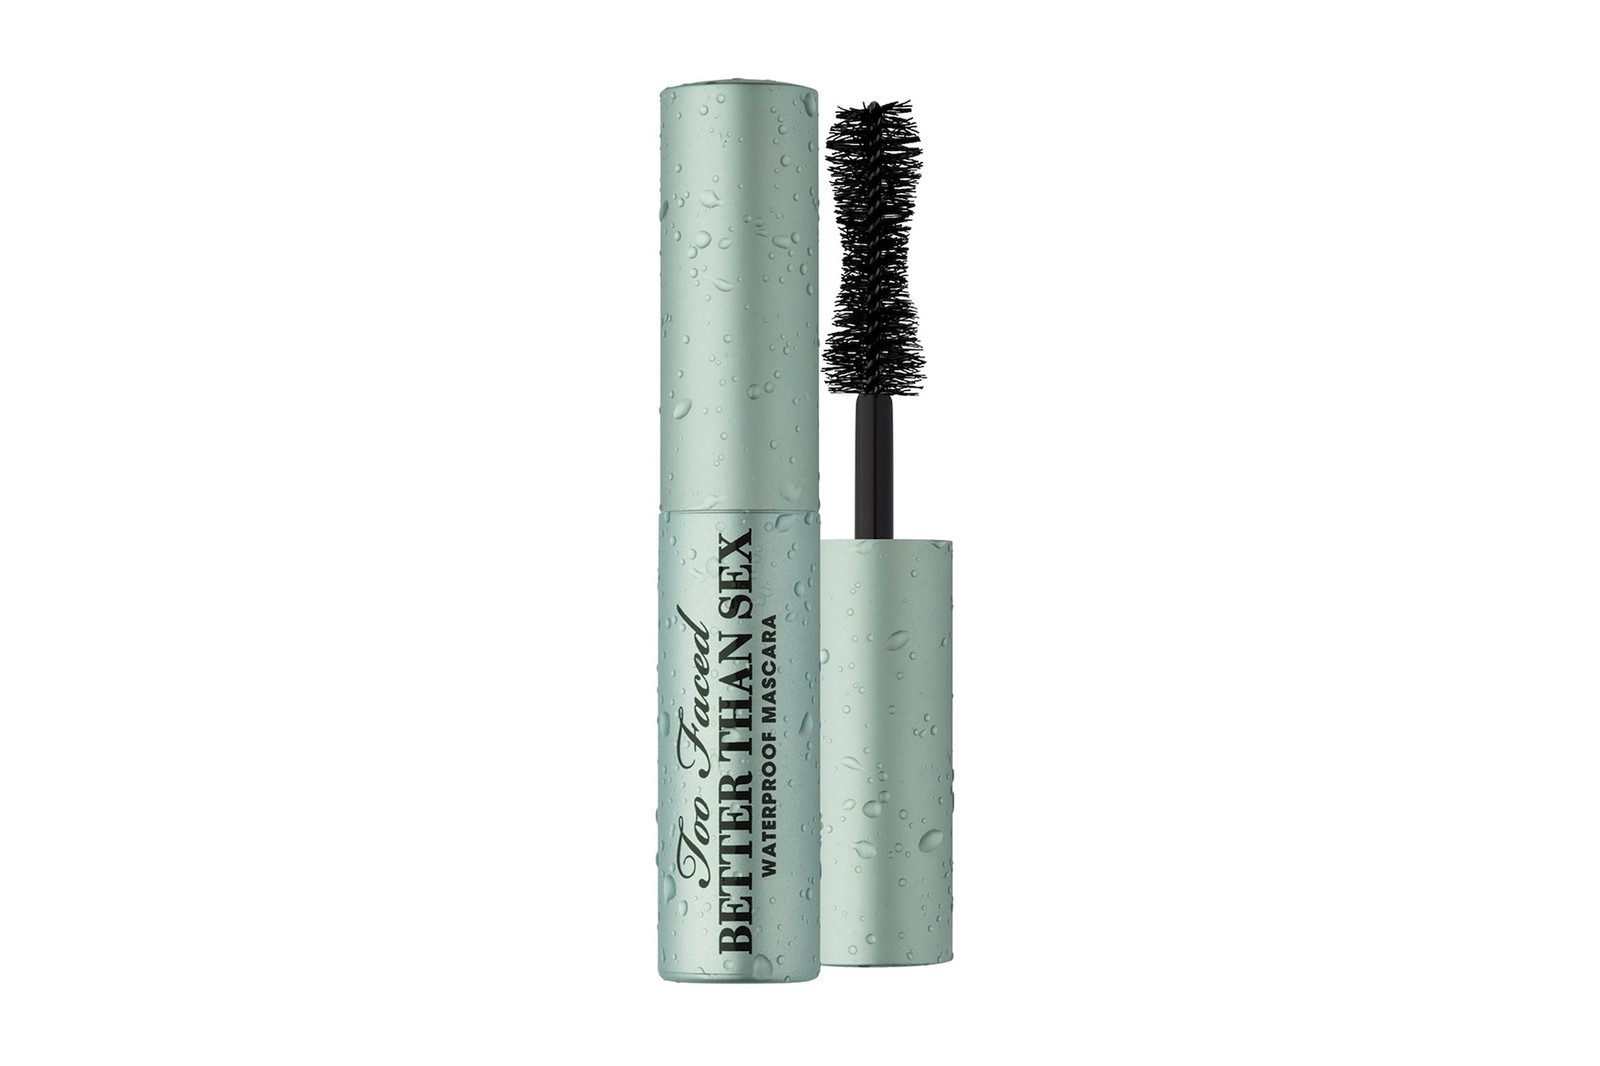 Best Waterproof Mascaras To Wear During Summer Dior Too Faced Tom Ford Beauty Chanel Armani Mascara Makeup Smudge-proof